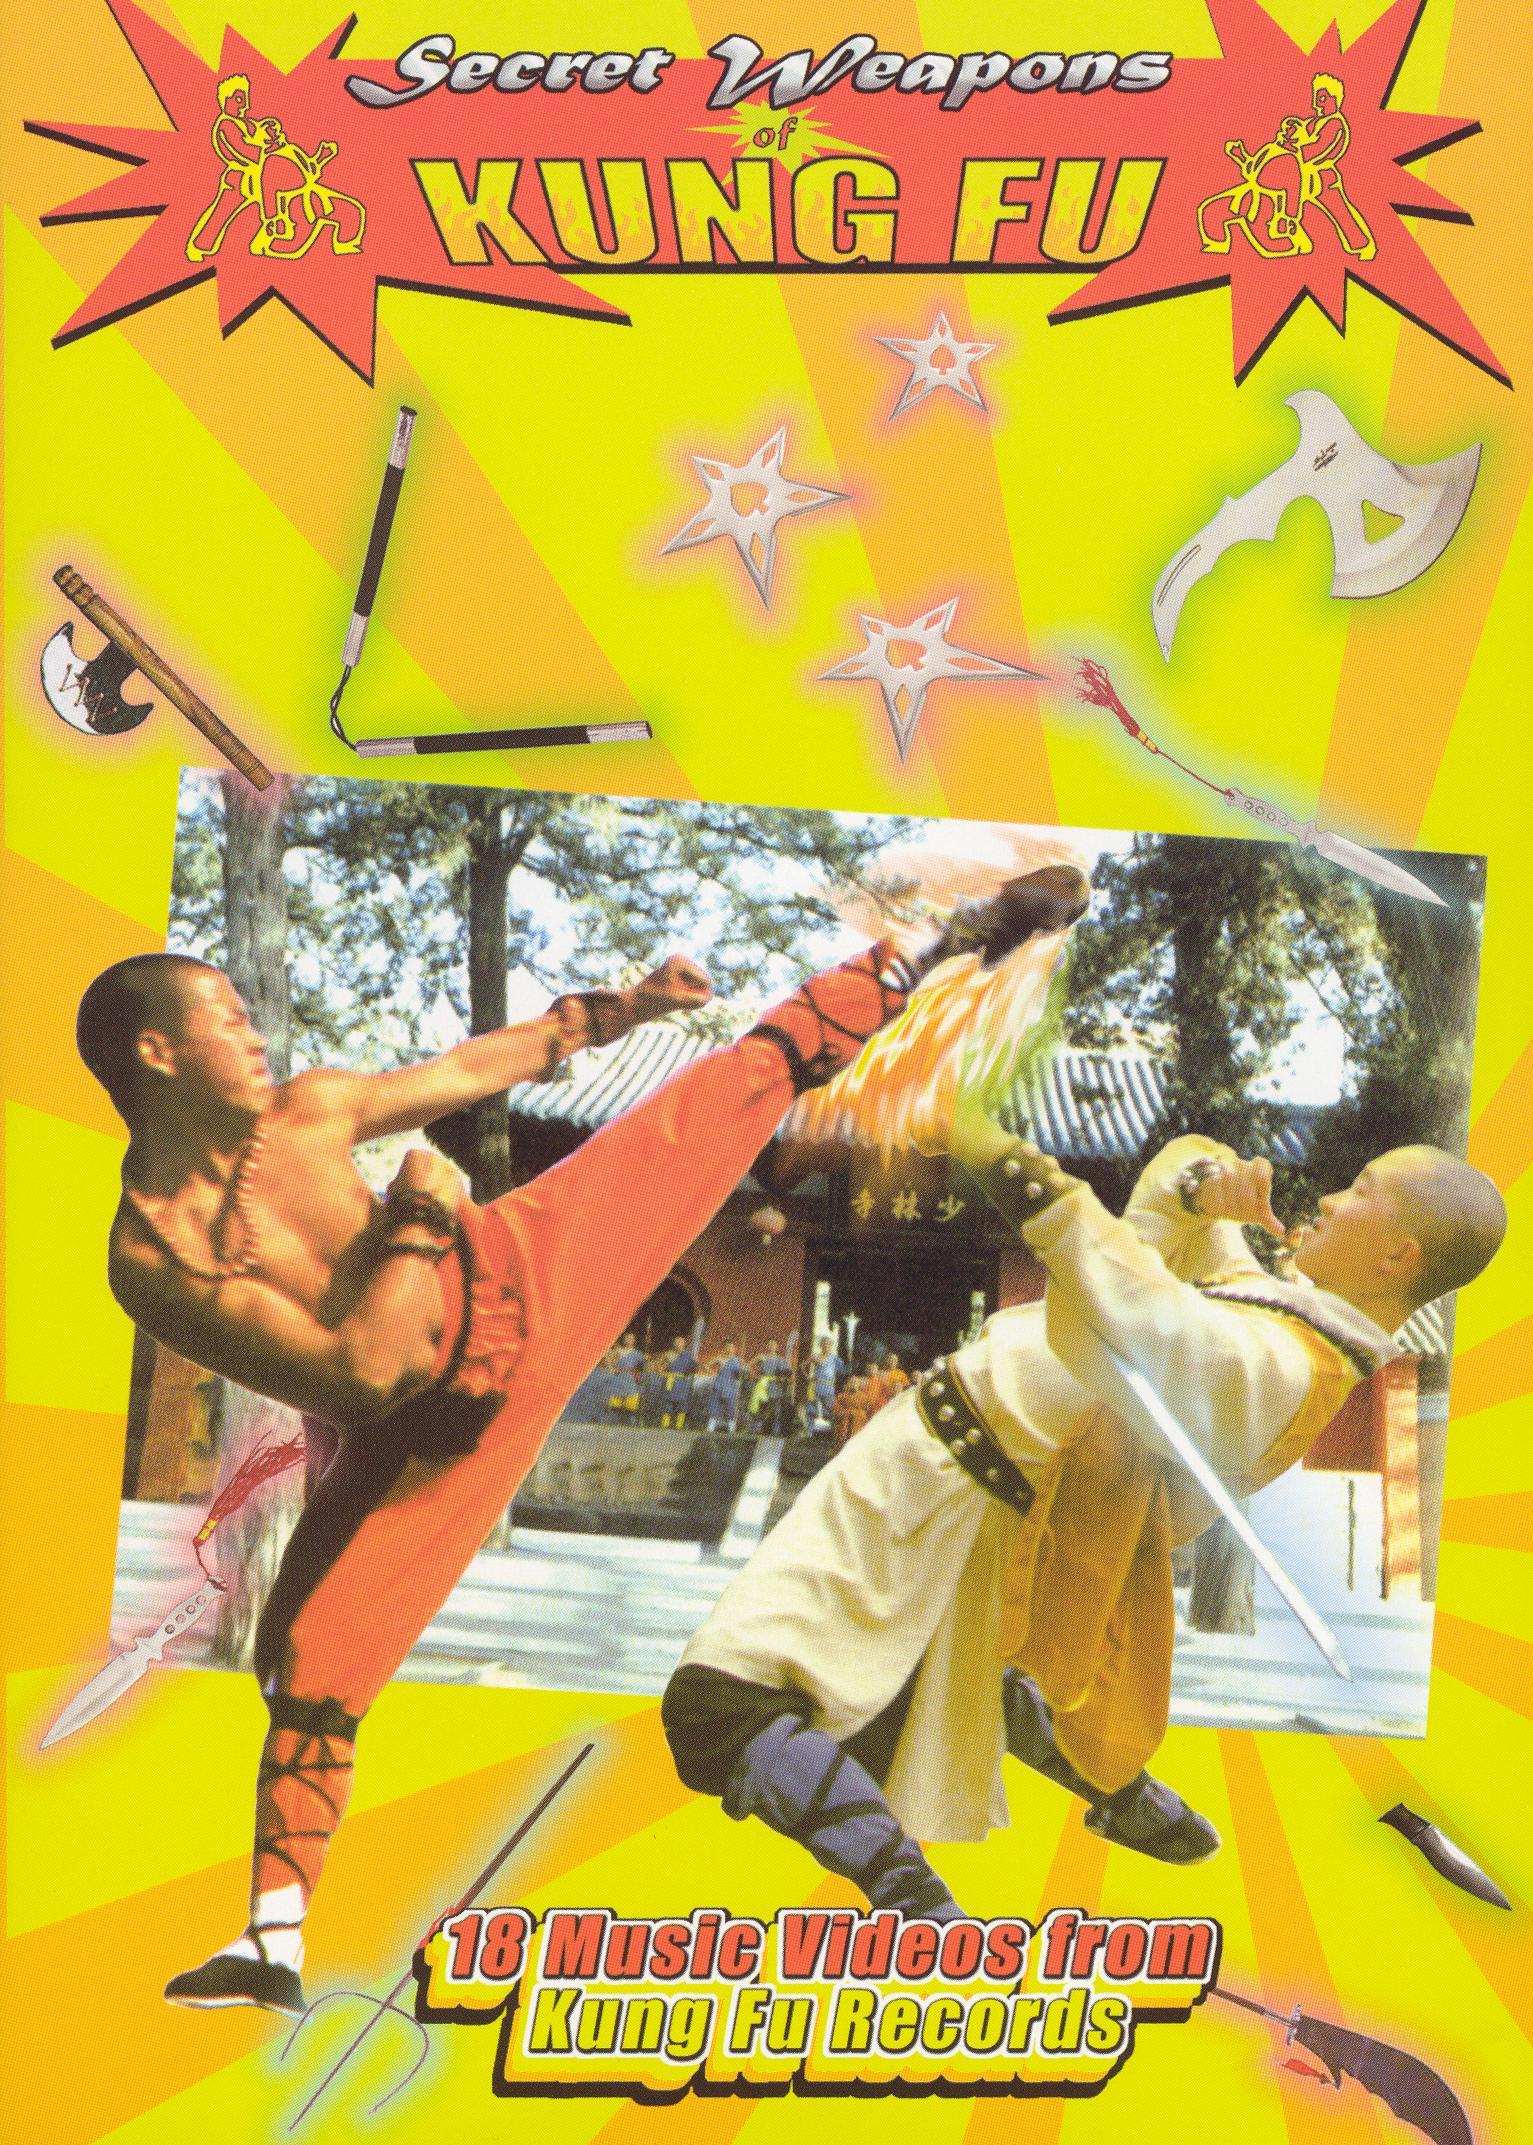 The Secret Weapons of Kung Fu